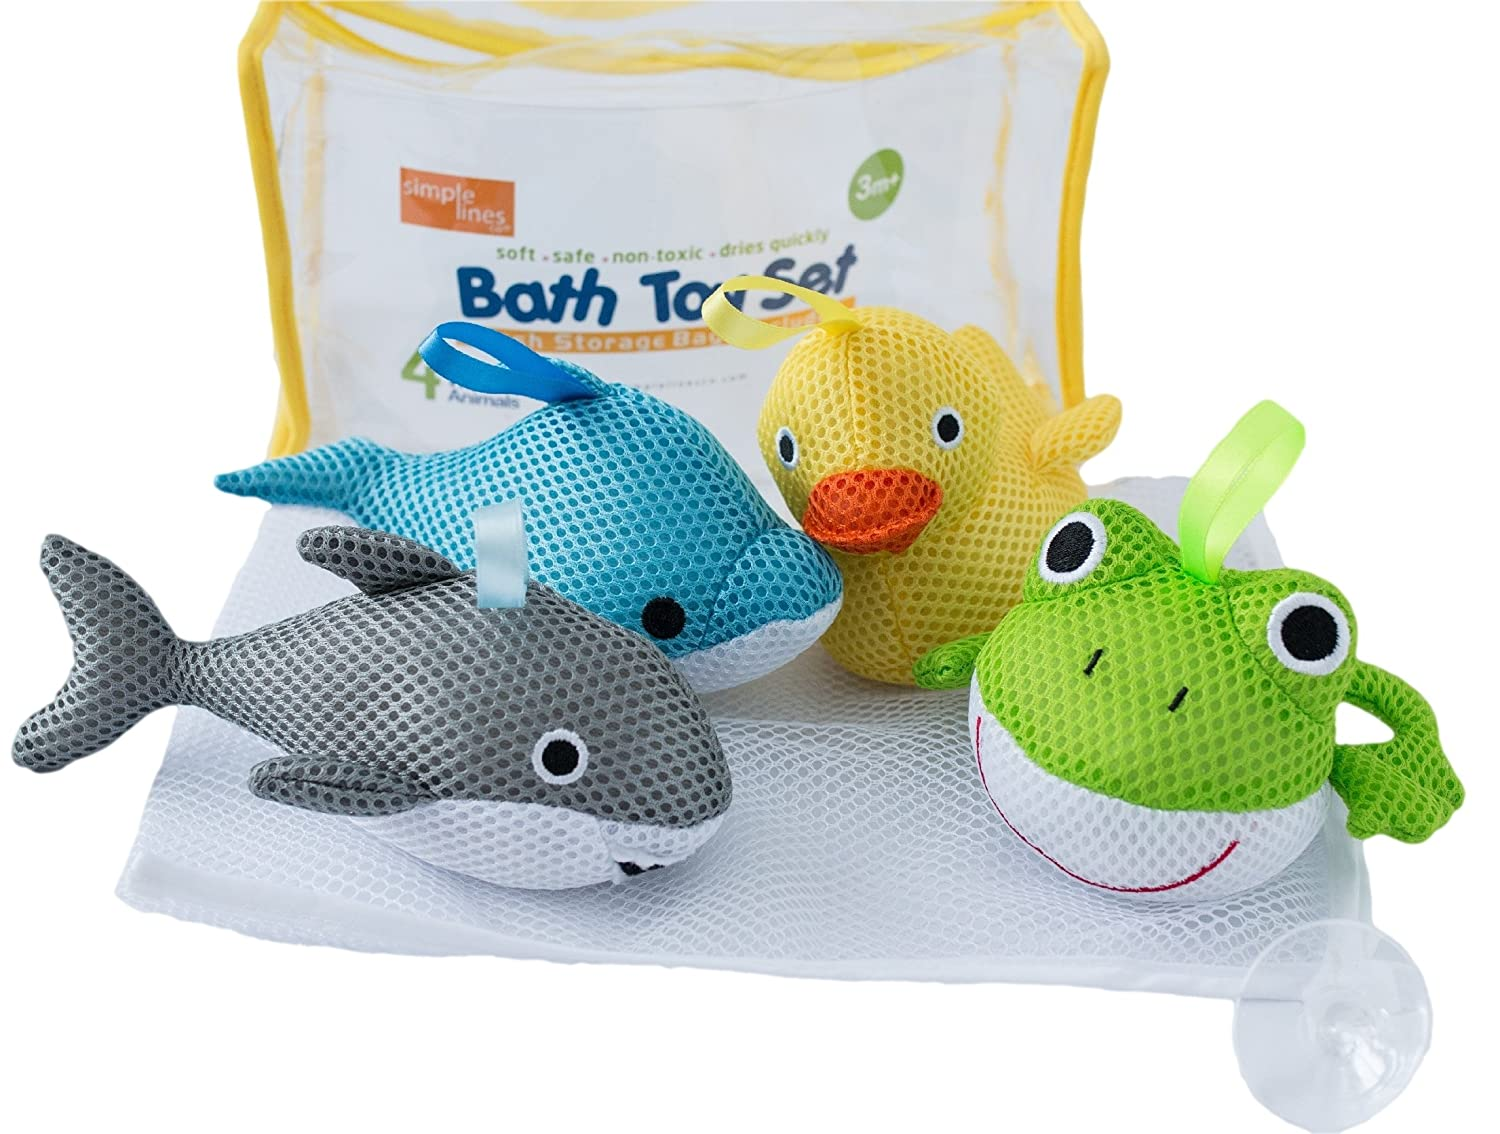 Amazon.com : Bath Toys - Soft, Safe & Educational for Baby ...